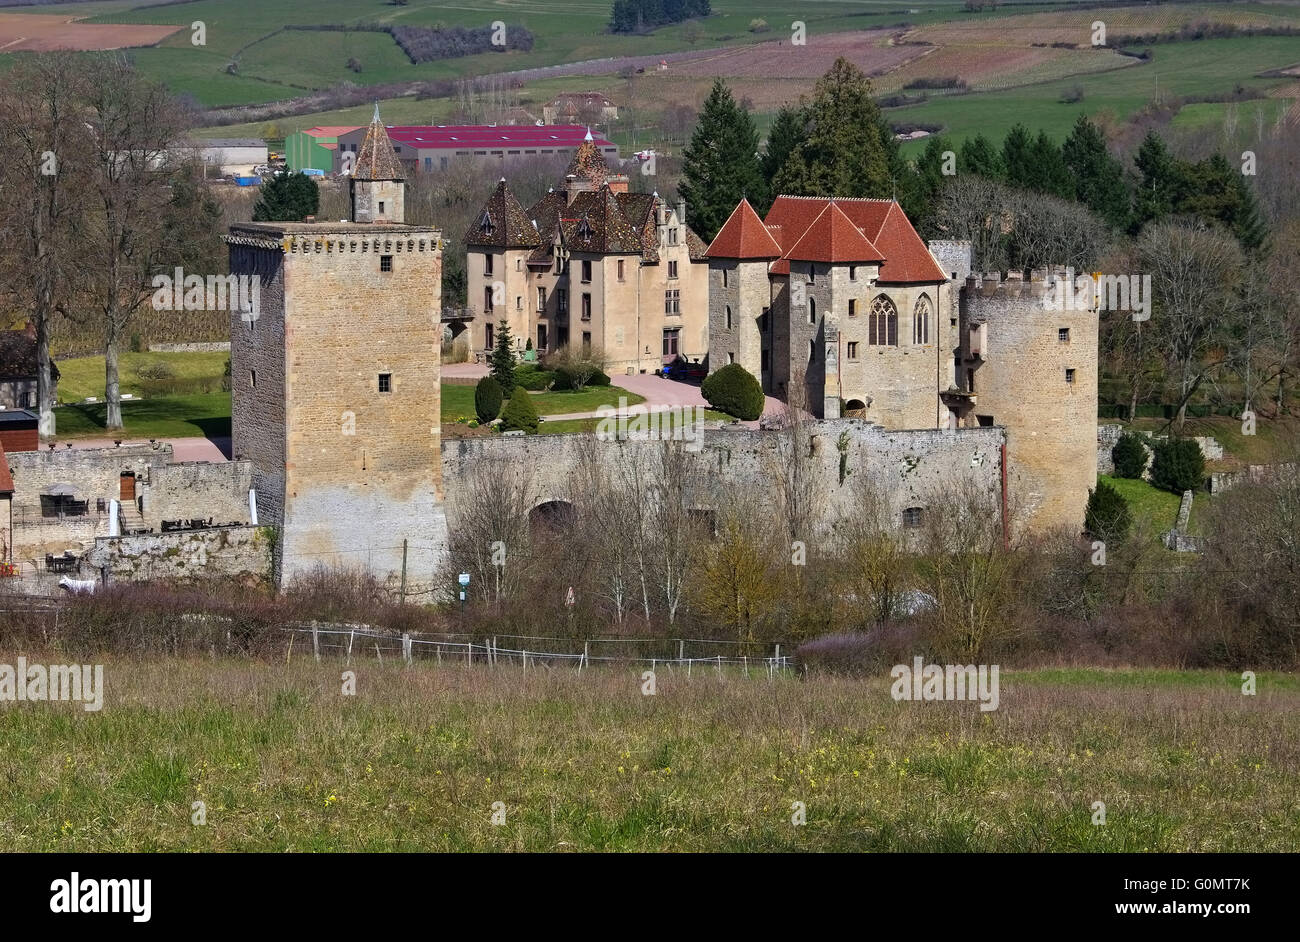 Couches Chateau in Burgund, Frankreich - Chateau Couches in Burgundy, France - Stock Image